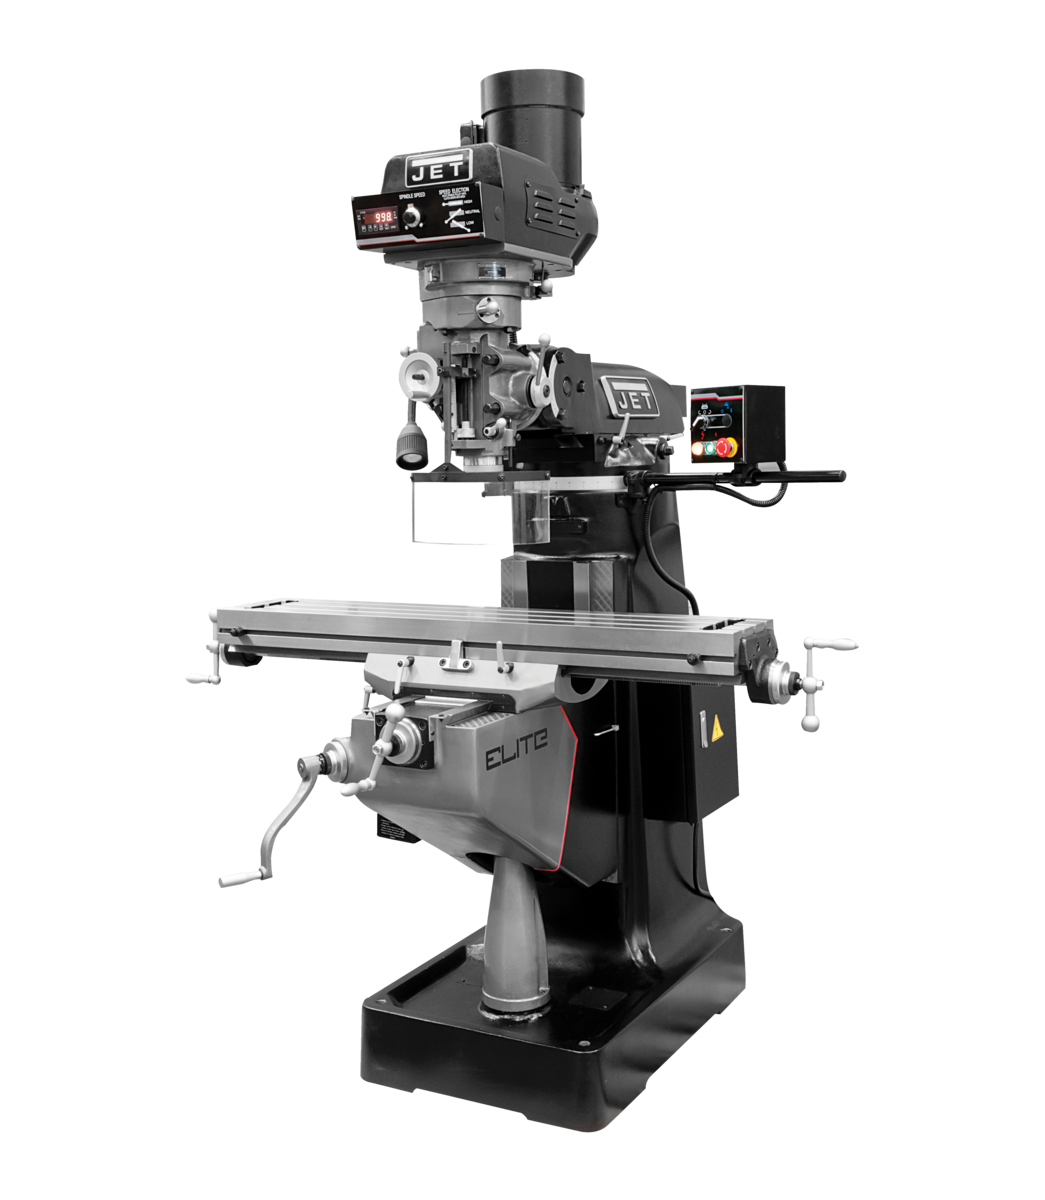 EVS-949 Mill with 3-Axis ACU-RITE 303 (Quill) DRO and Servo X, Y, Z-Axis Powerfeeds and USA Air Powered Draw Bar